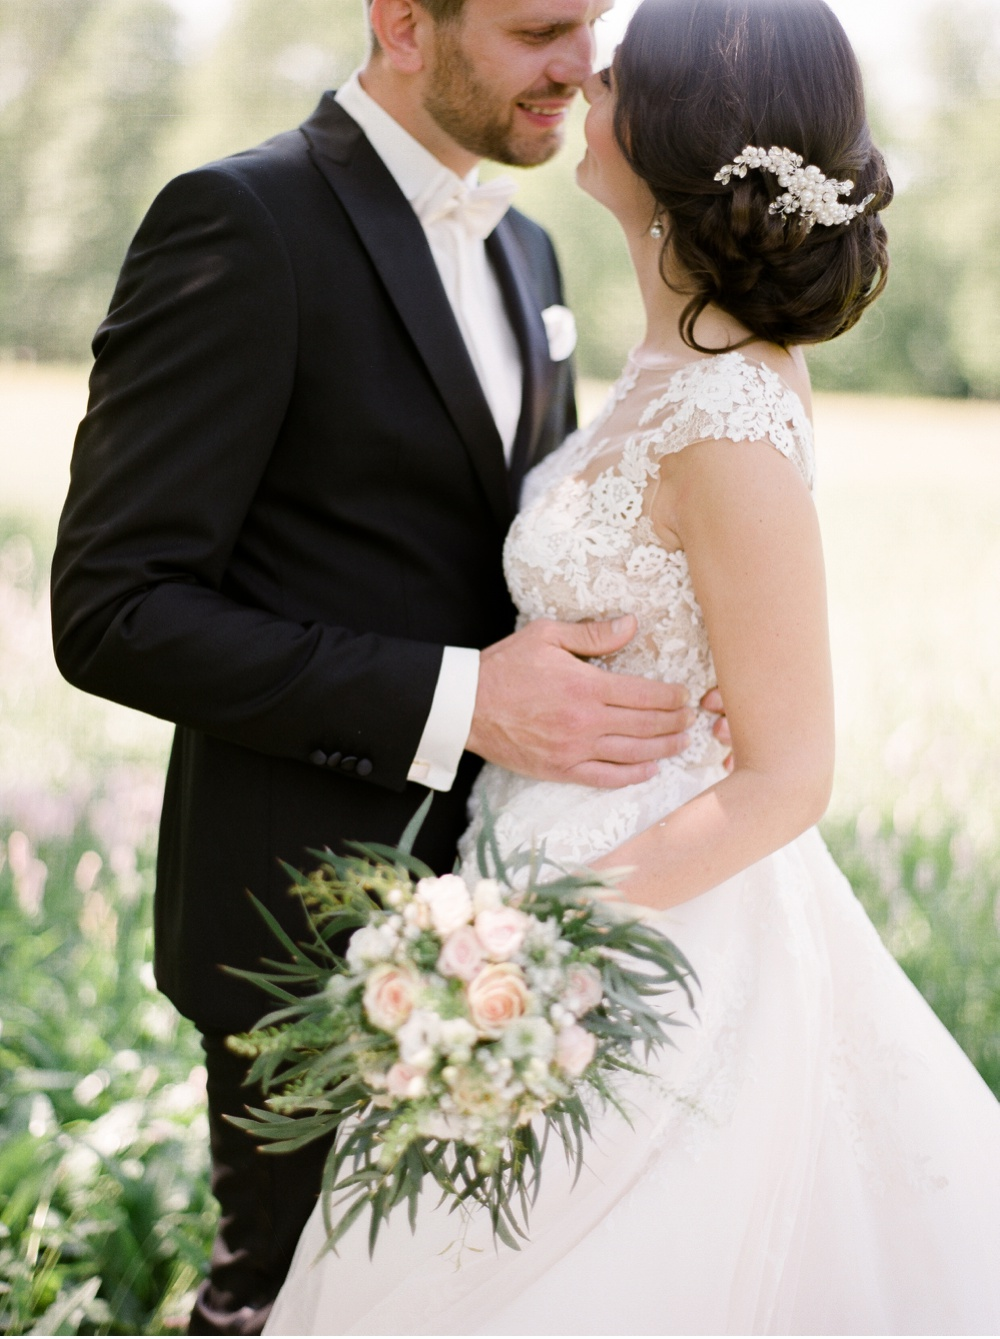 Paris_Provence_Wedding_Photographer©MadalinaSheldon_0051.jpg